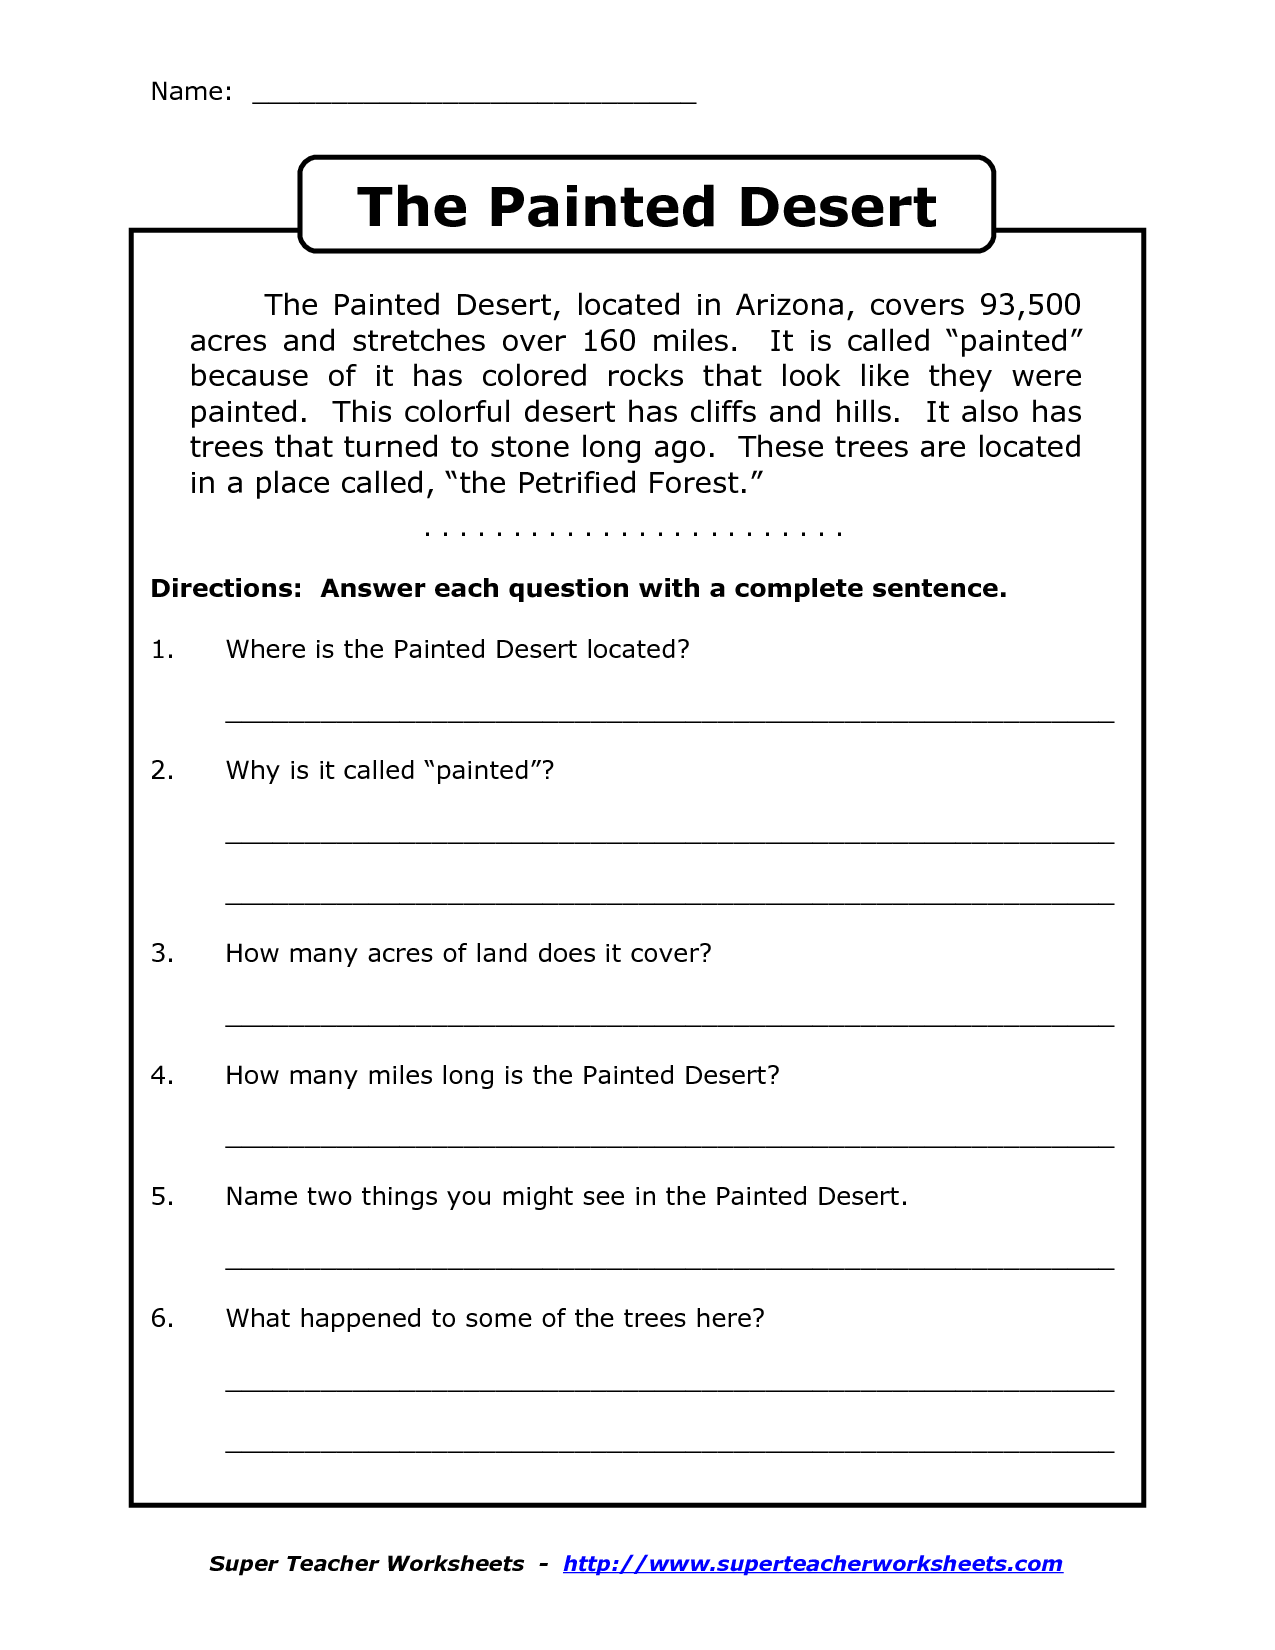 Worksheets Third Grade Reading Comprehension Worksheets reading worksheets for 4th grade comprehension 3 name the painted desert